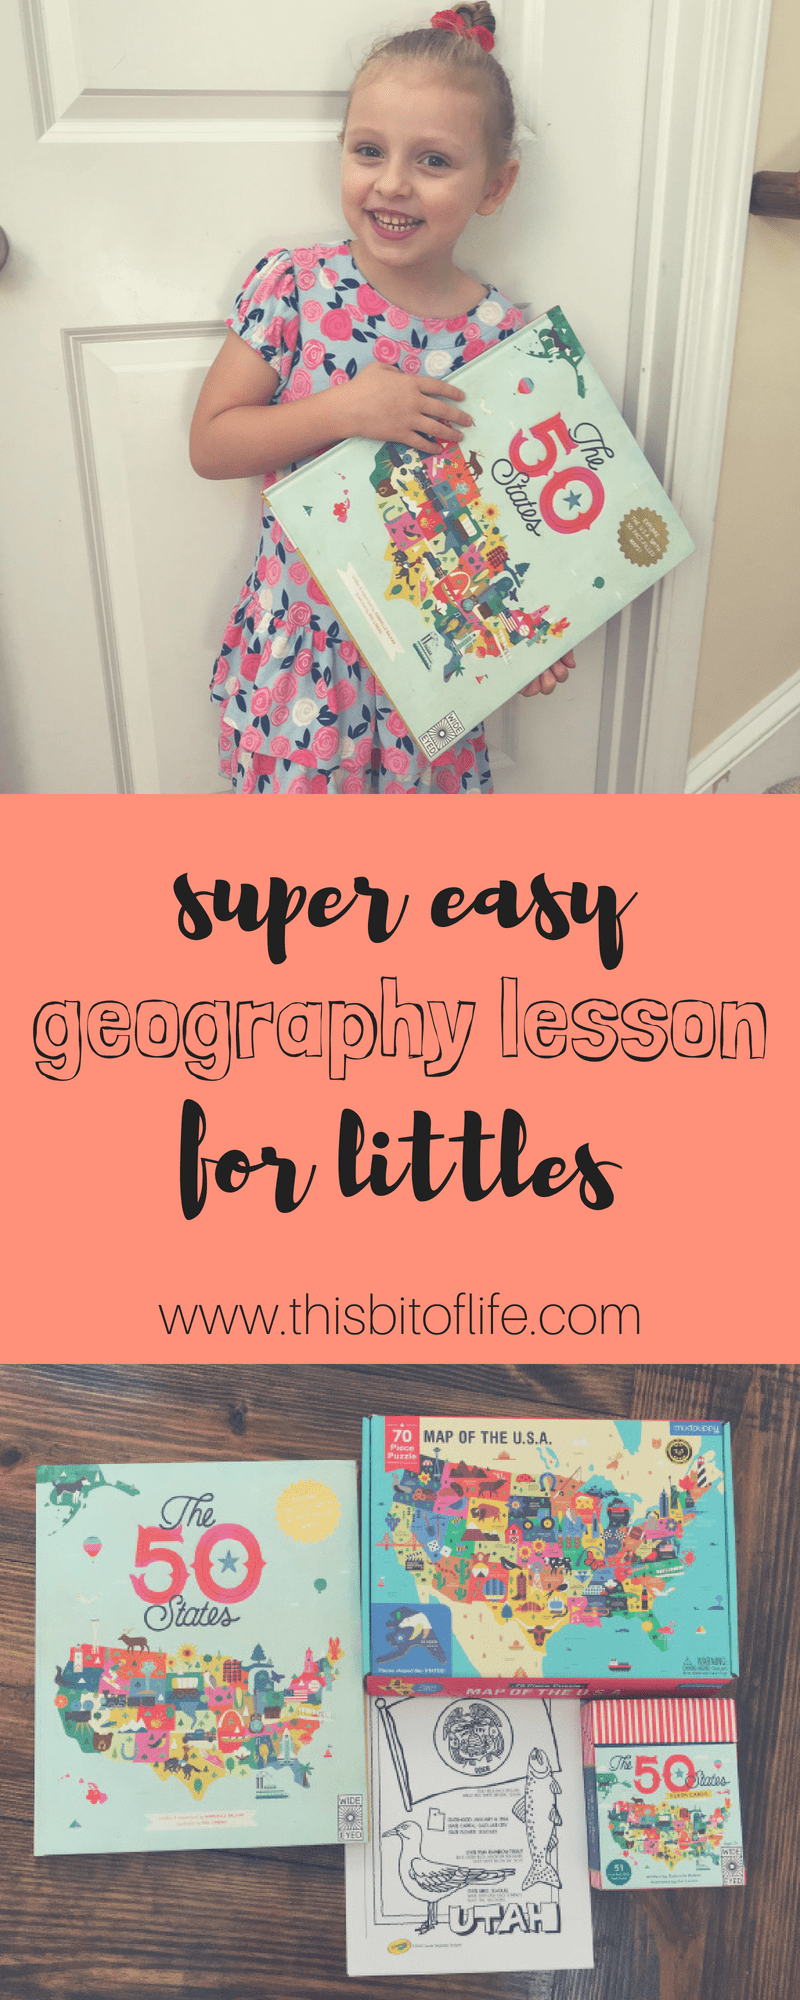 Super Easy Geography Lesson for Littles. This simple geography lesson is beautiful and perfect for our homeschooling geography curriuculum! It has everything ready for you, which makes it easy to add to your homeschool day. This can be used for preschool, kindergarten, and well into elementary for homeschoolers. A fun and easy, hands on geography! #homeschool #geography #preschool #kindergarten #homeschooling #homeschoolers #handson